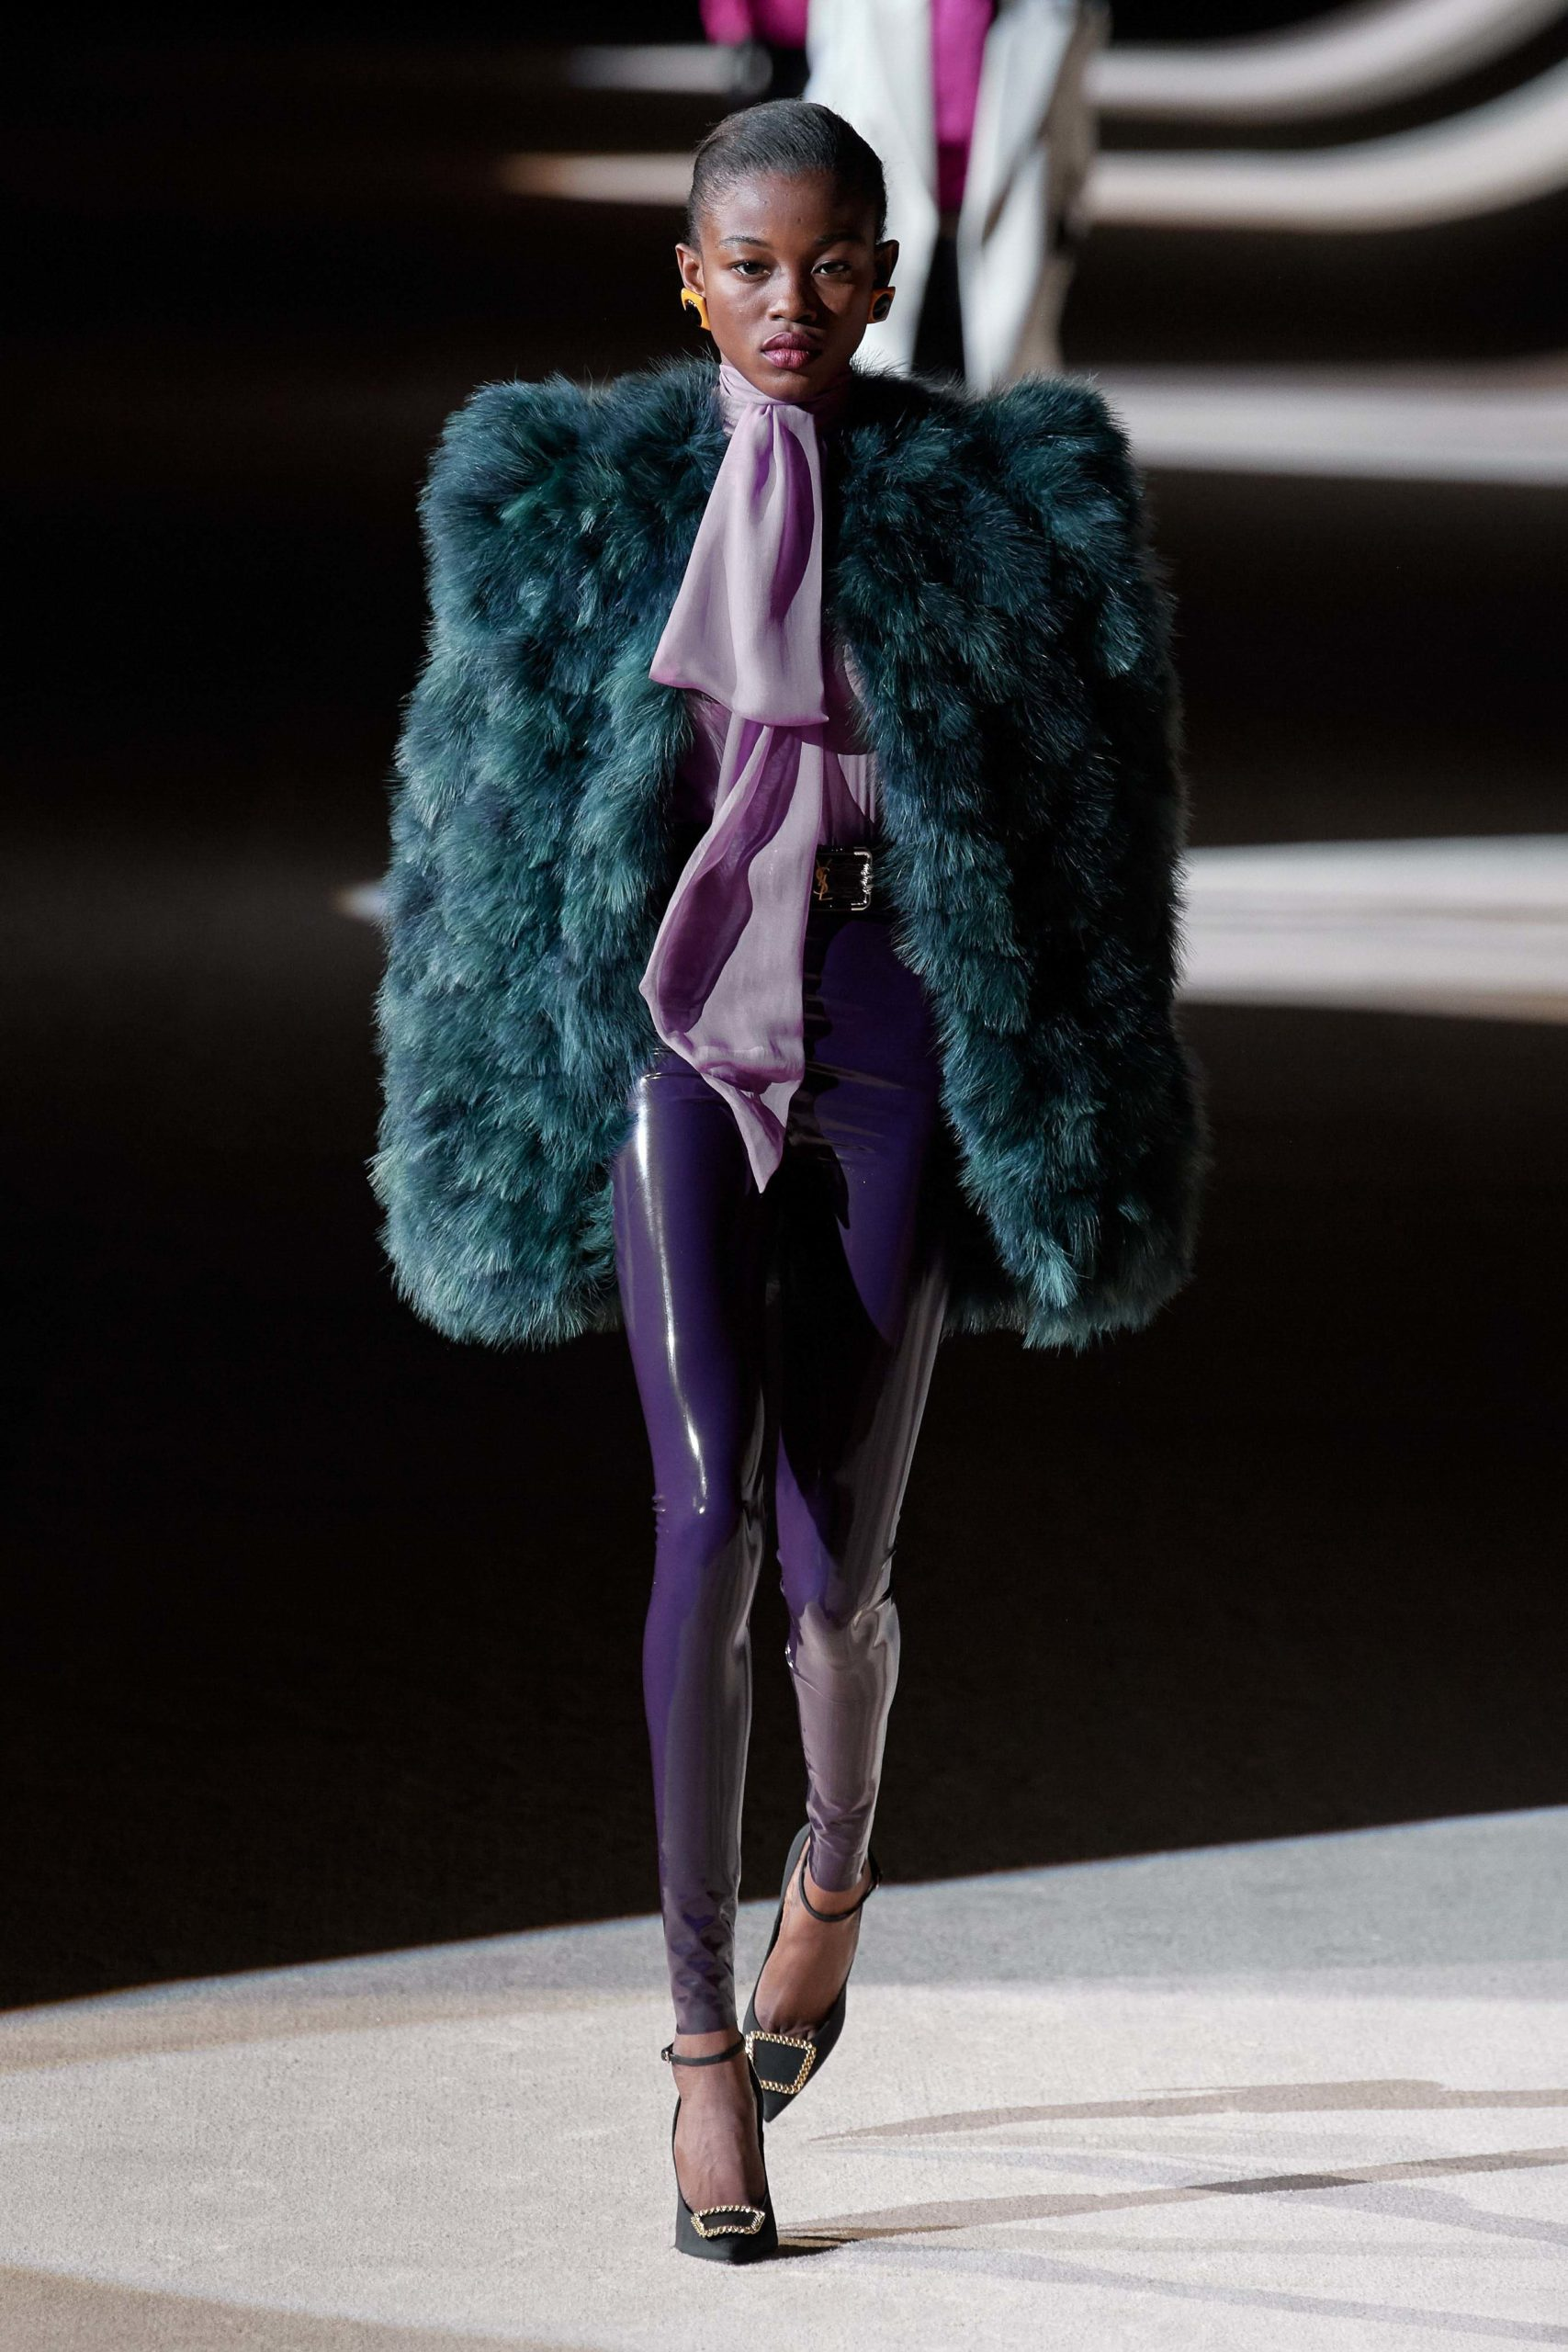 Saint Laurent Fall 2020 trends runway coverage Ready To Wear Vogue eggplant feather luster glossy